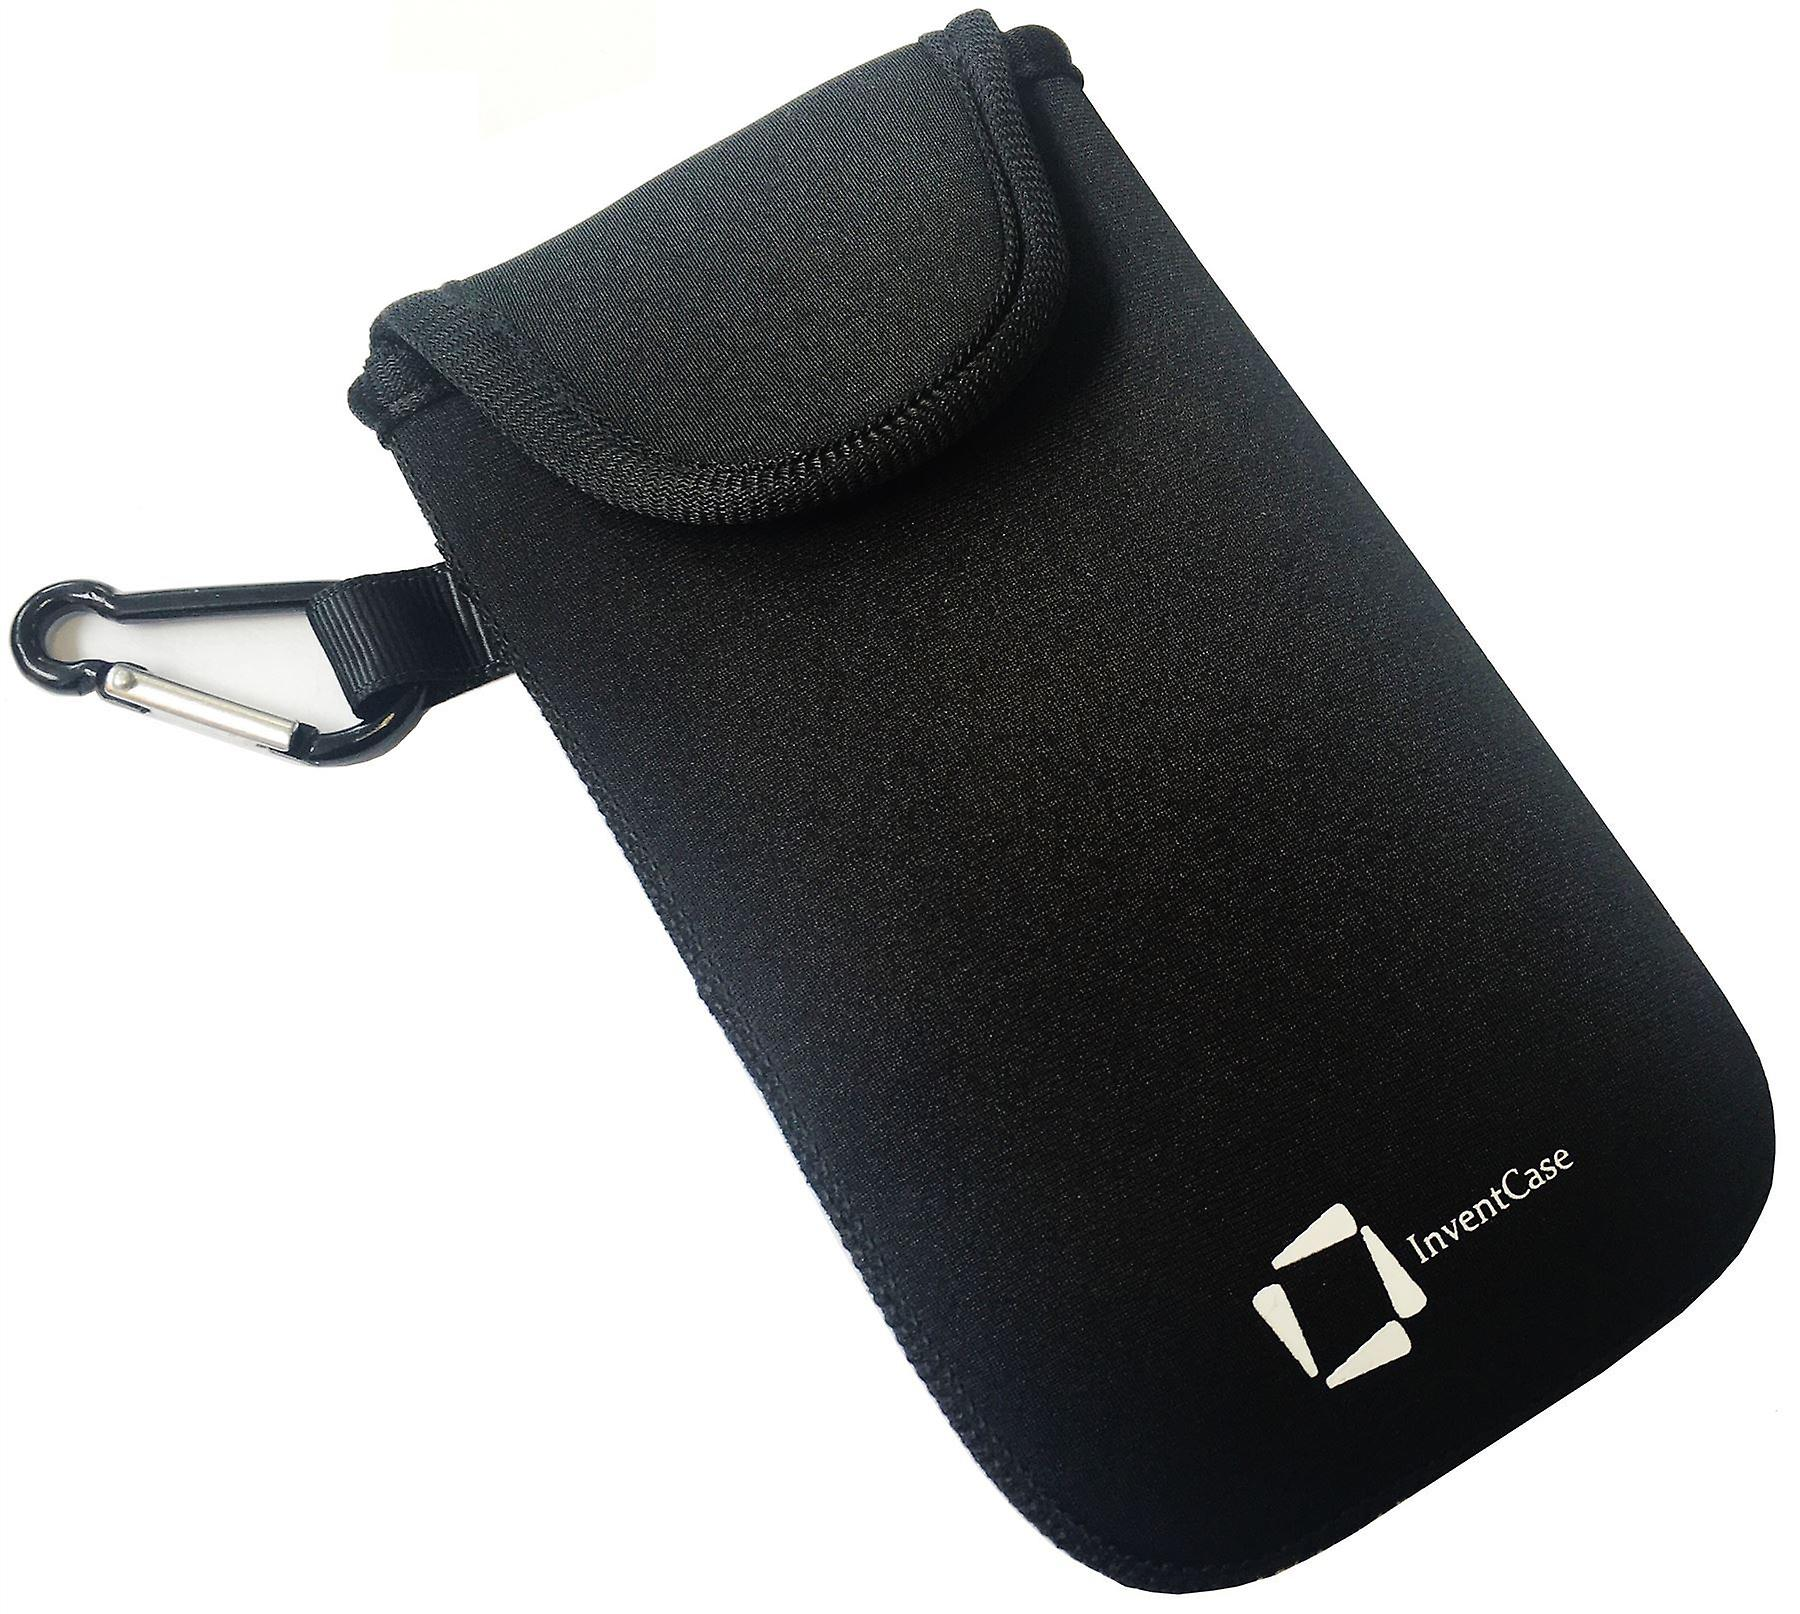 InventCase Neoprene Impact Resistant Protective Pouch Case Cover Bag with Velcro Closure and Aluminium Carabiner for Motorola DROID Turbo - Black